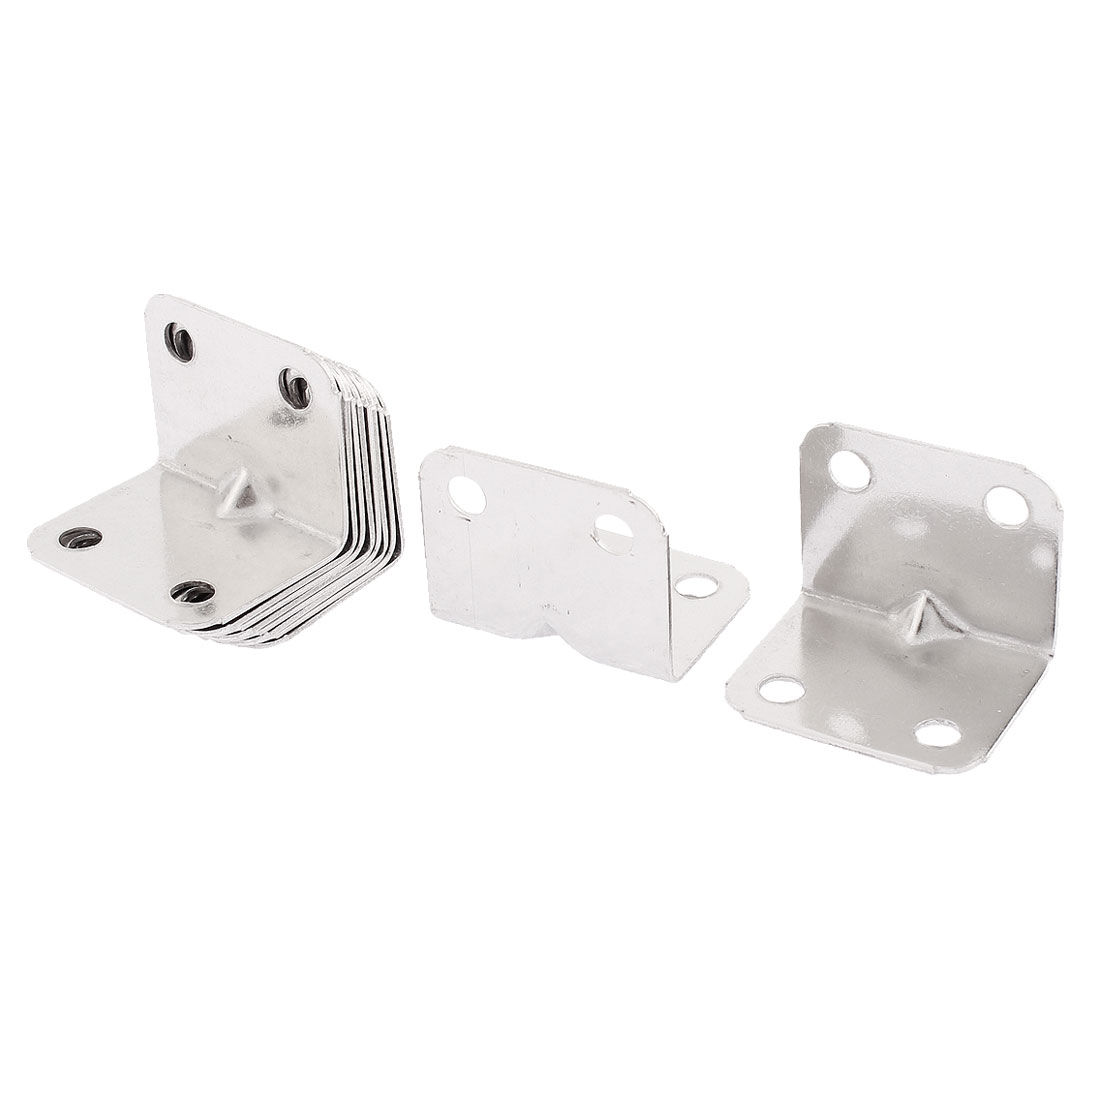 Stainless Steel 90 Degree 4 Holes Corner Angle Bracket 10pcs